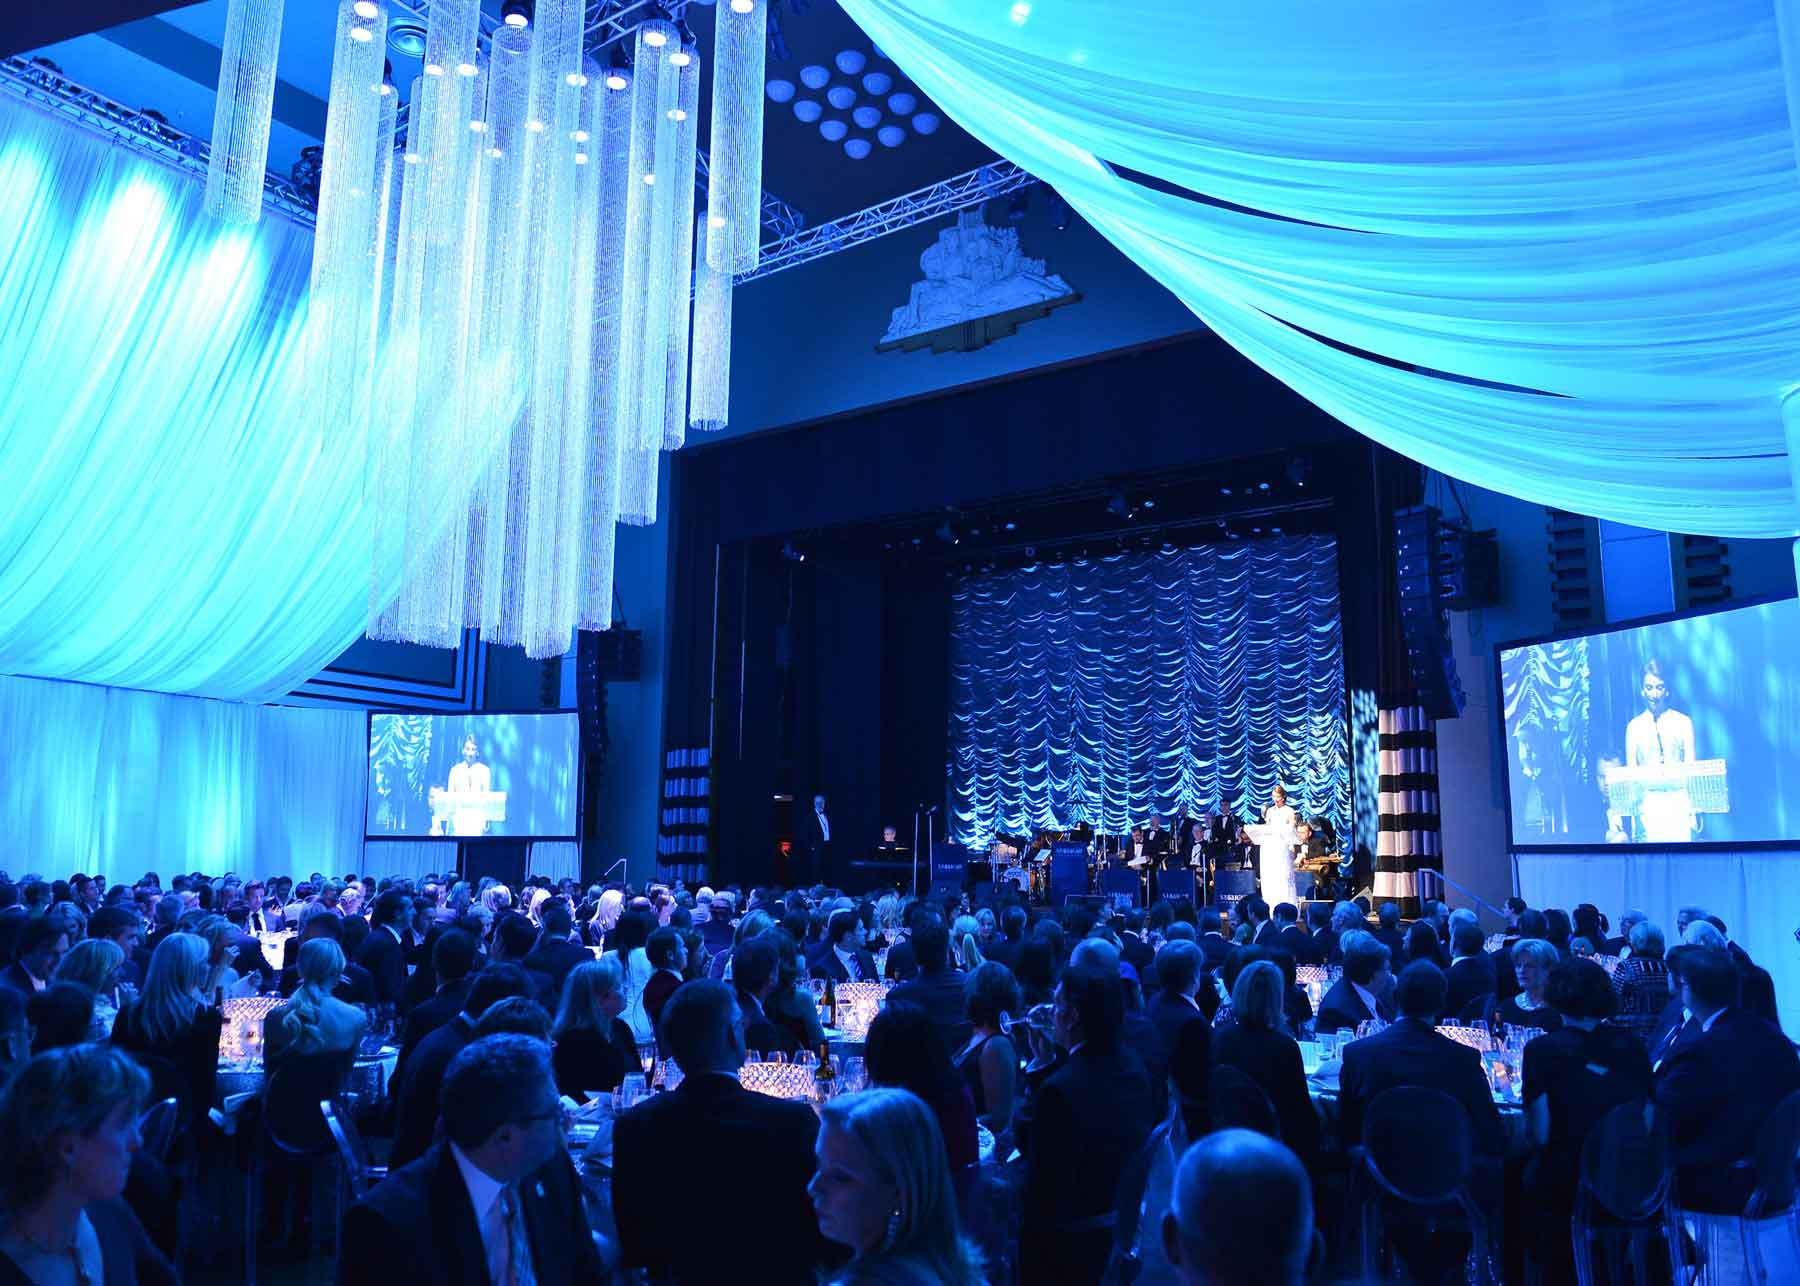 A crowd under atmospheric blue light at The Carlu event venue in Toronto watching a woman in a white dress reading on stage.